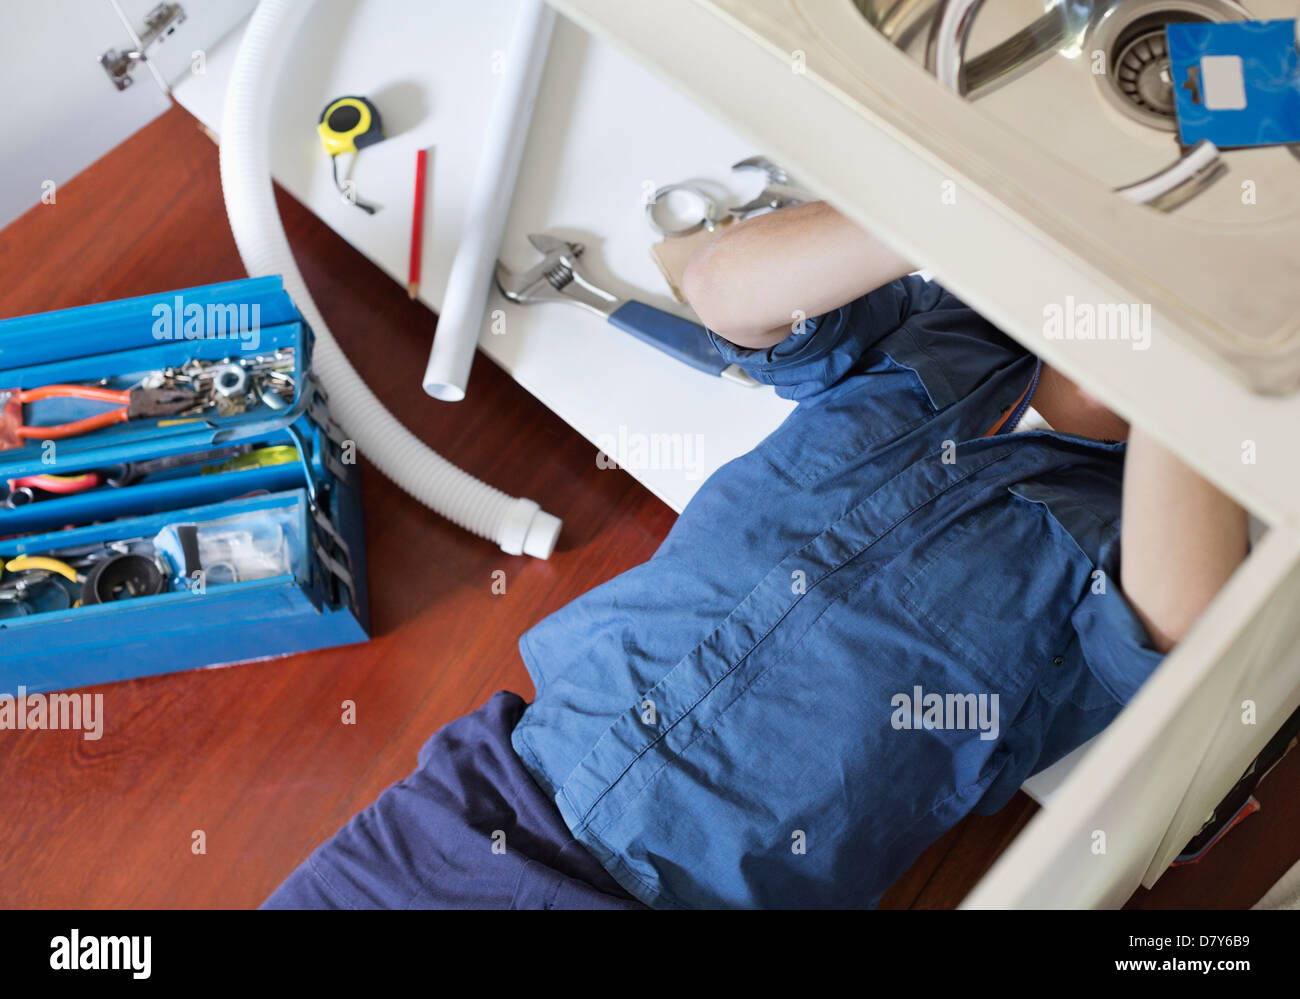 Plumber working on pipes under sink - Stock Image